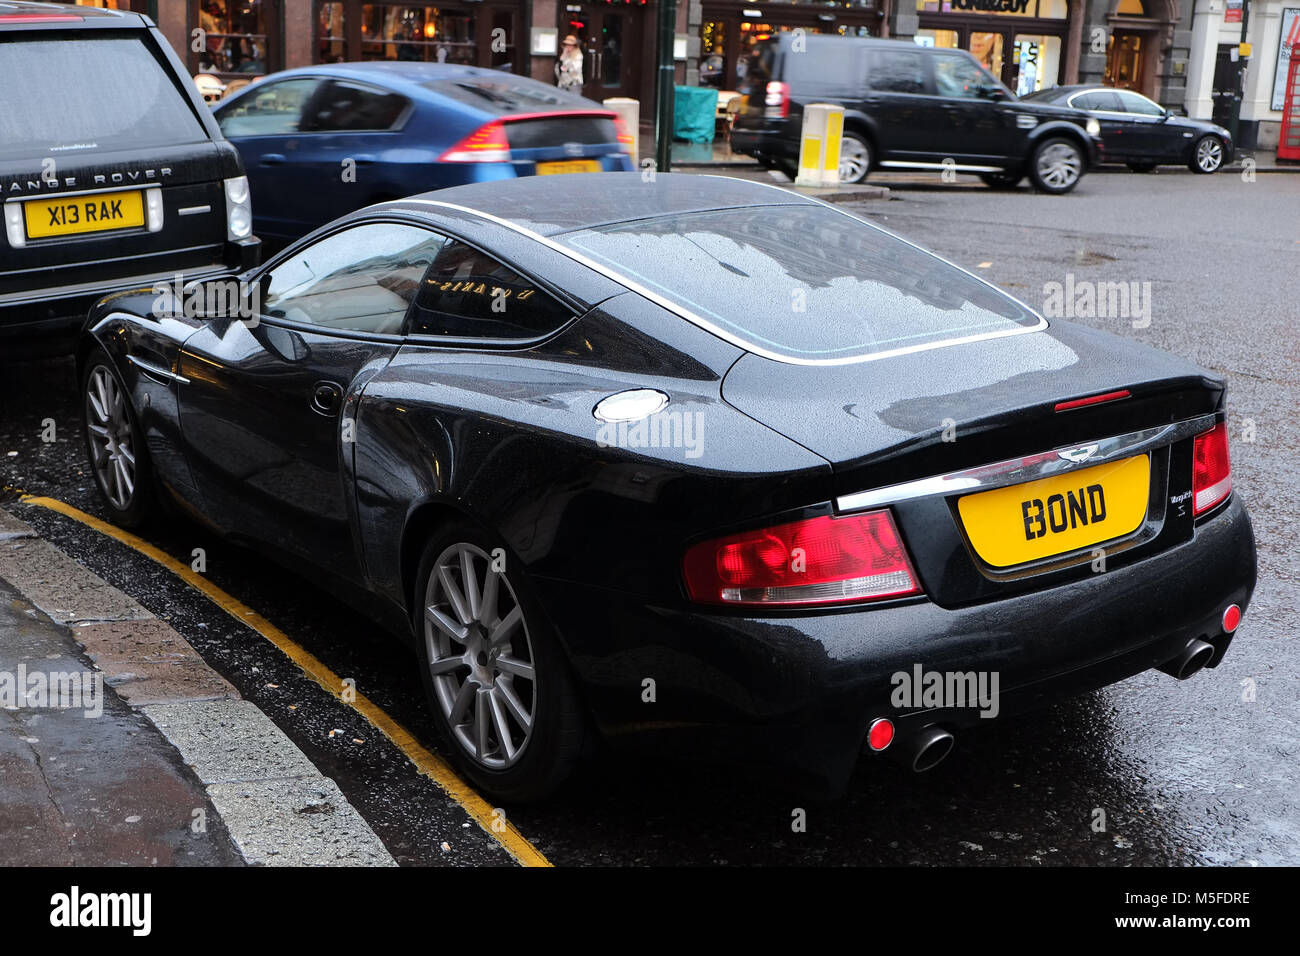 Aston Martin Vanquish Parked In Sloane Square London The Owner Has